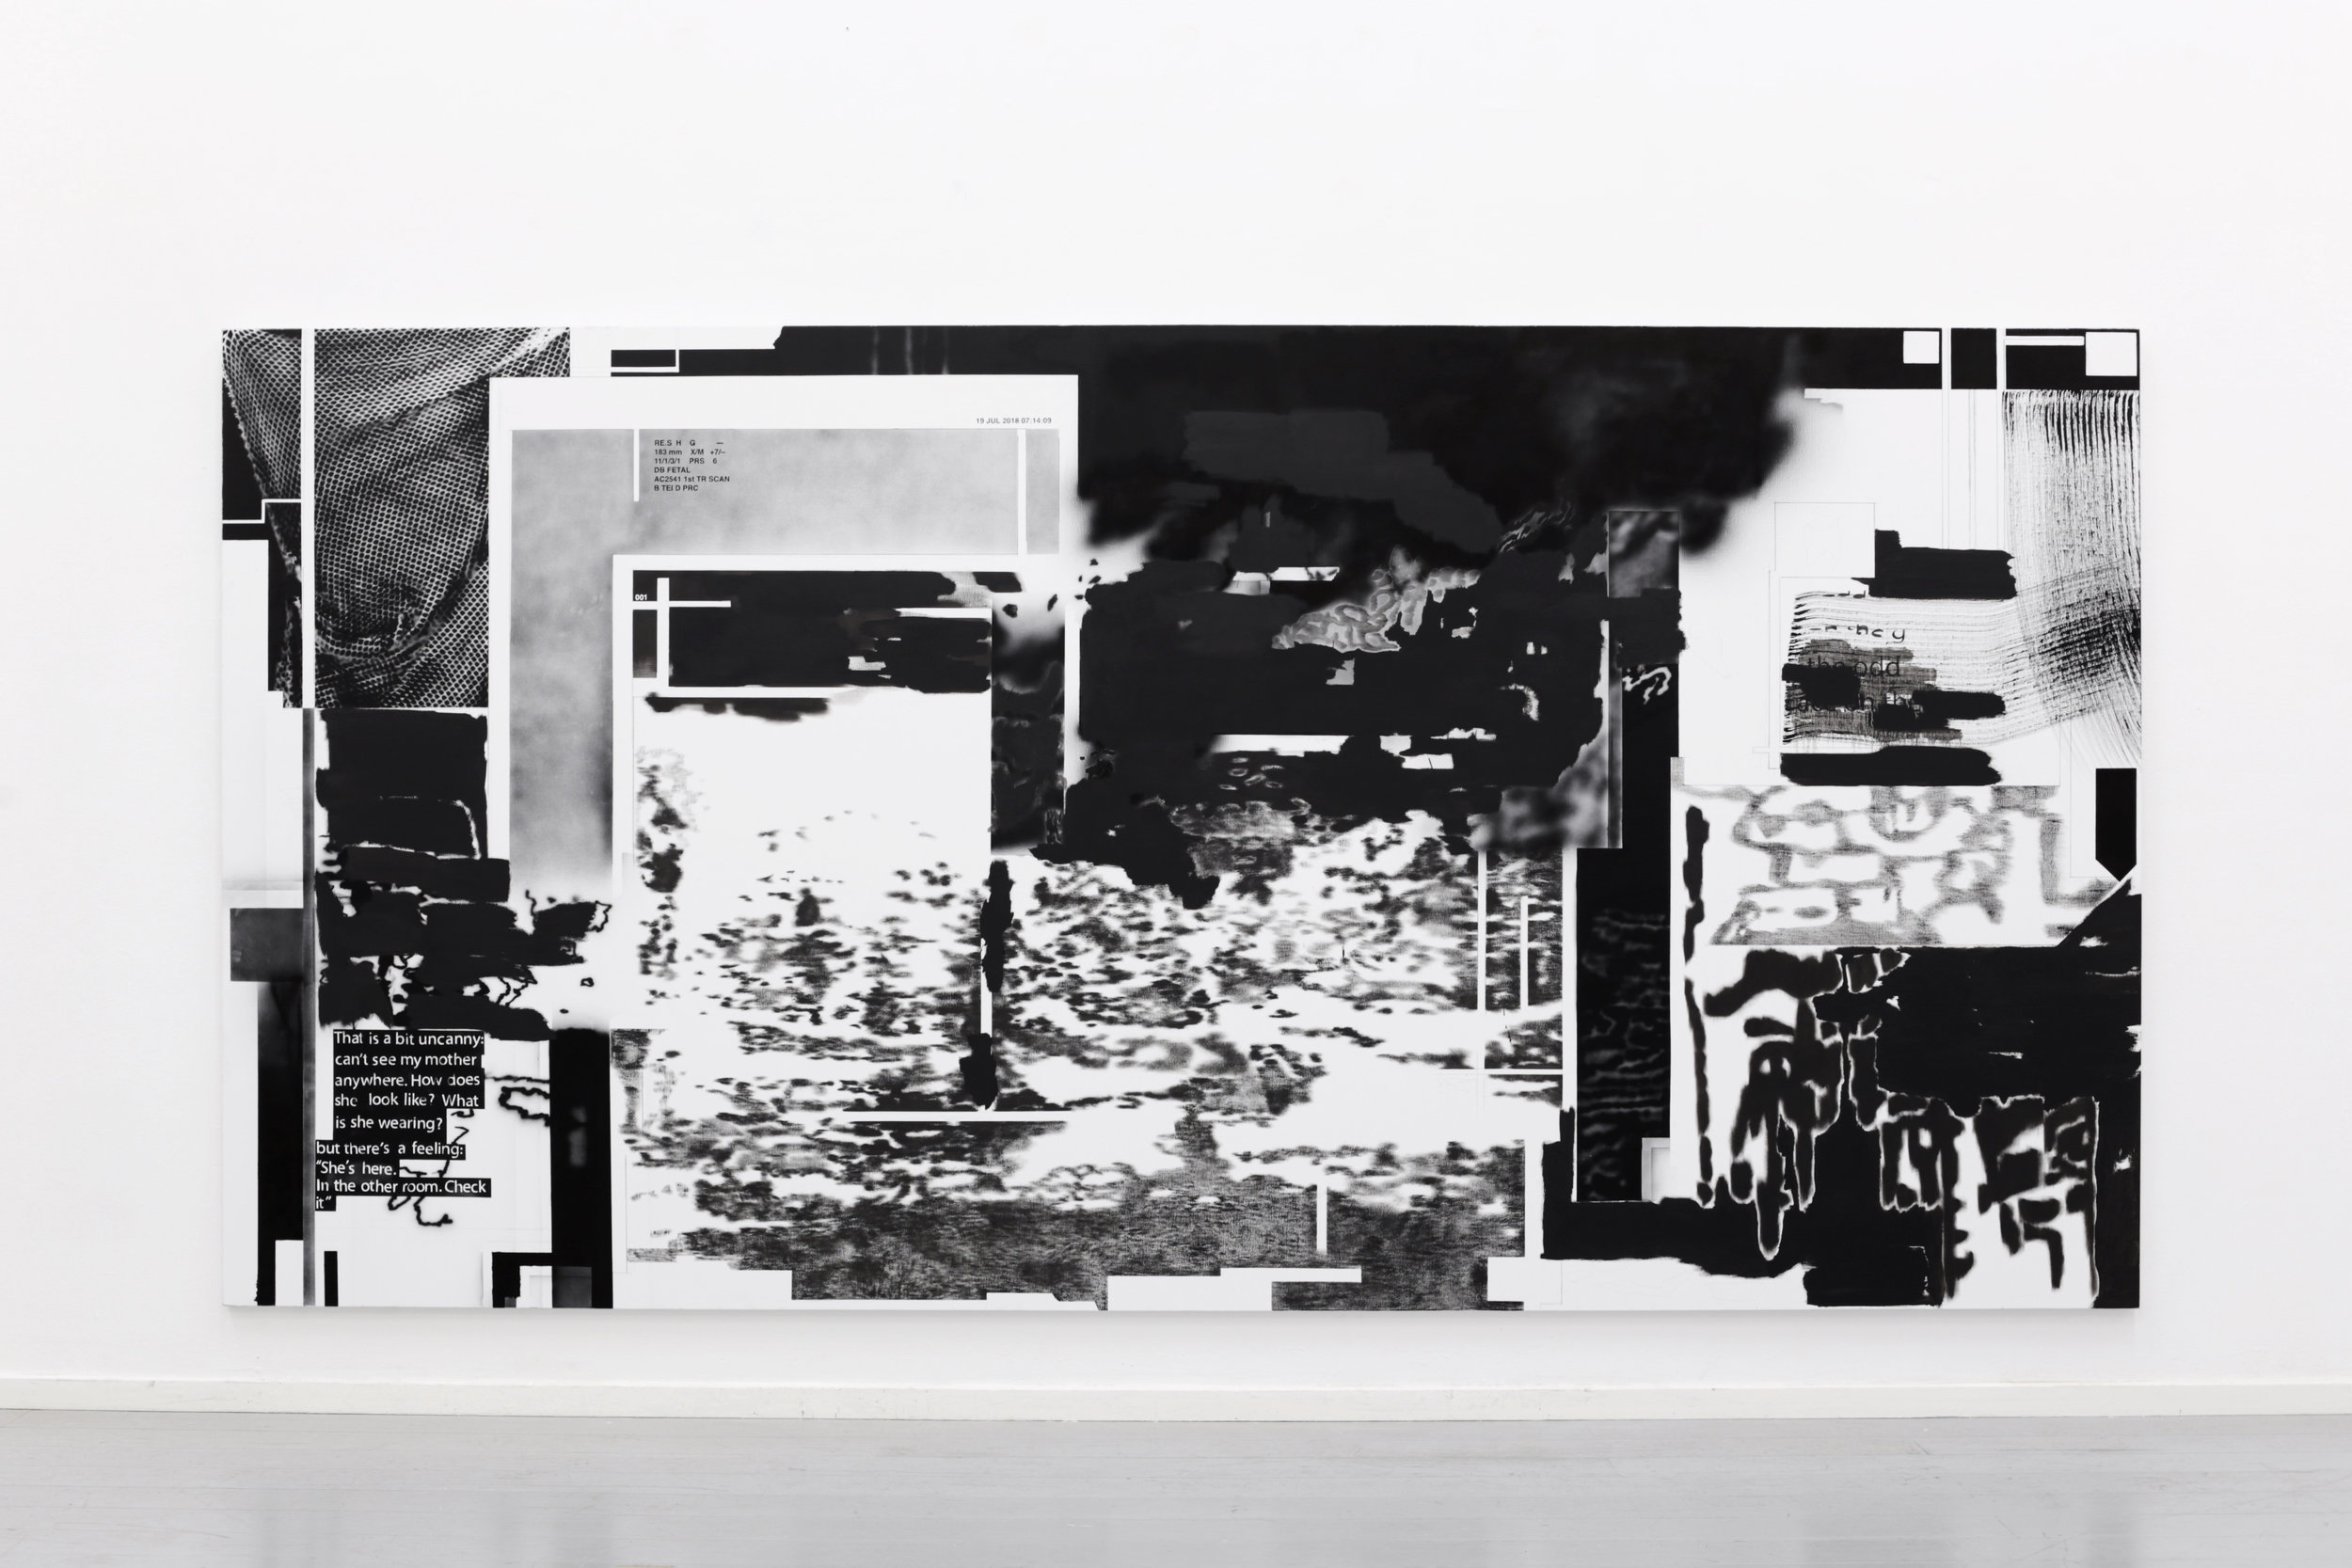 SCREEN 001, oil, acrylic and pencil on canvas, 204 x 400 cm, 2018